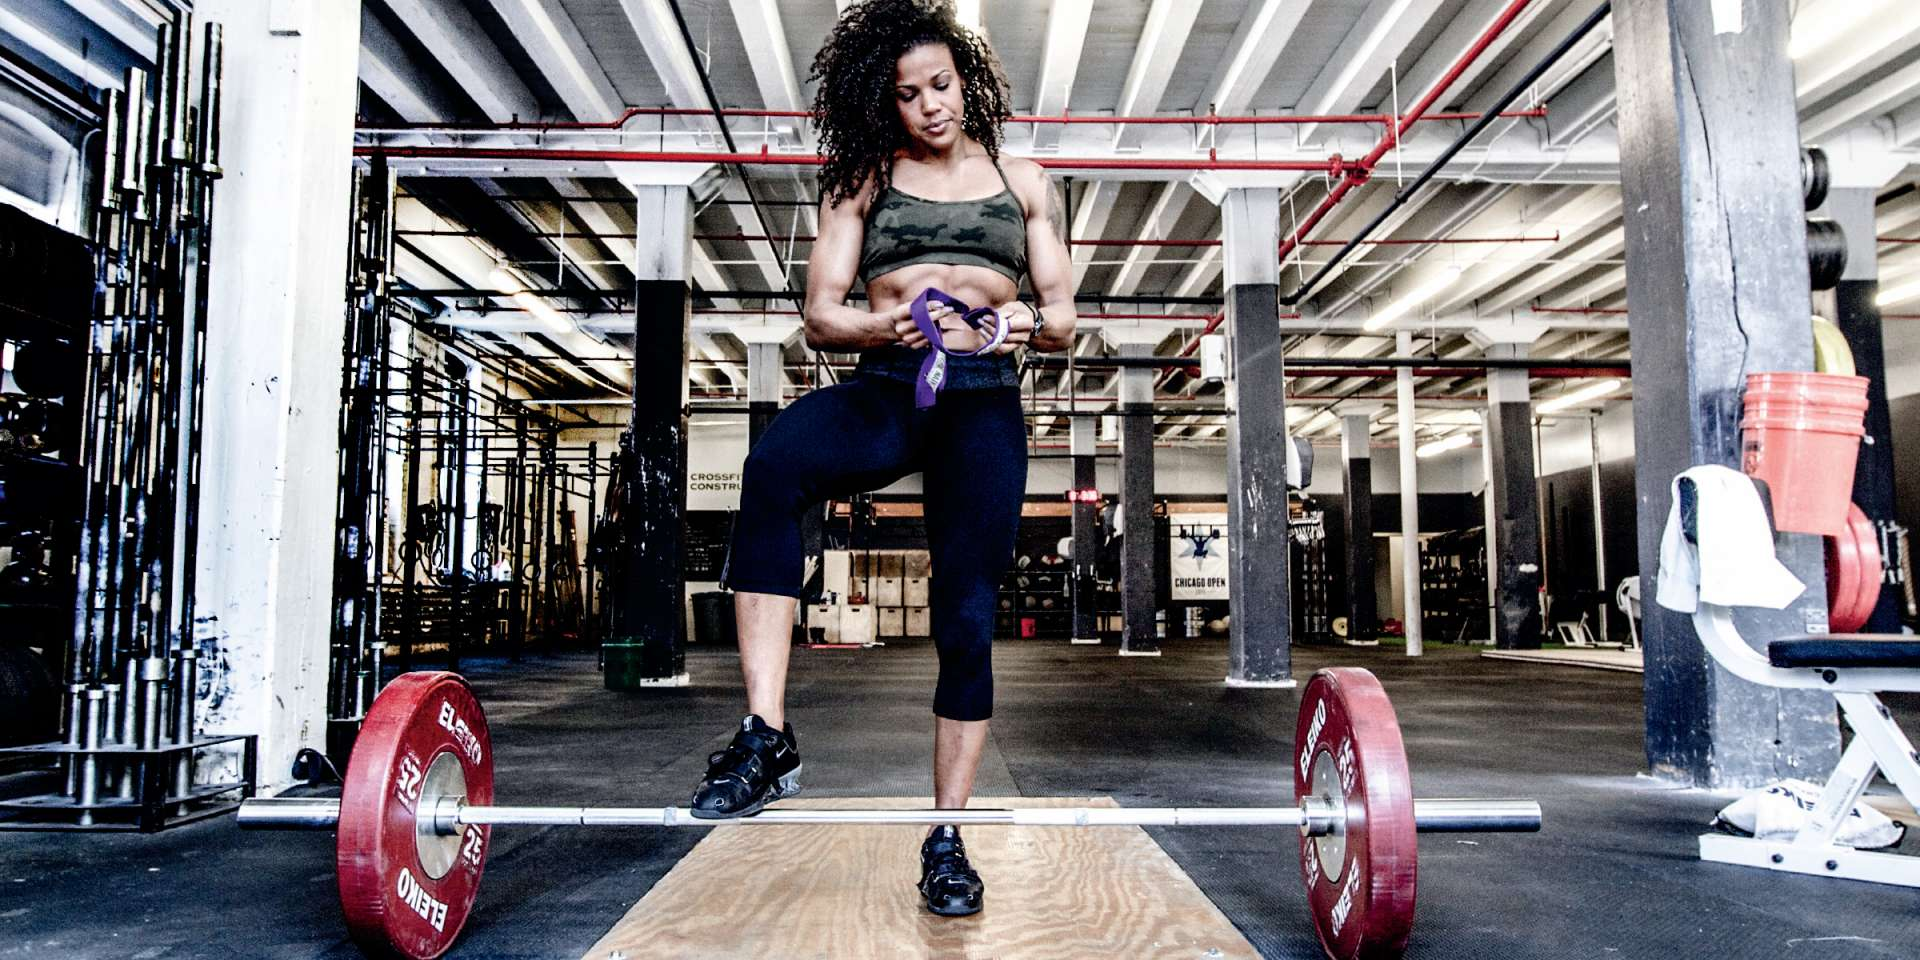 Straight Sets Vs Circuit Training Supersets More Workouts Cardio Workout Gym By Elisabeth Akinwale November 1 2018 Is